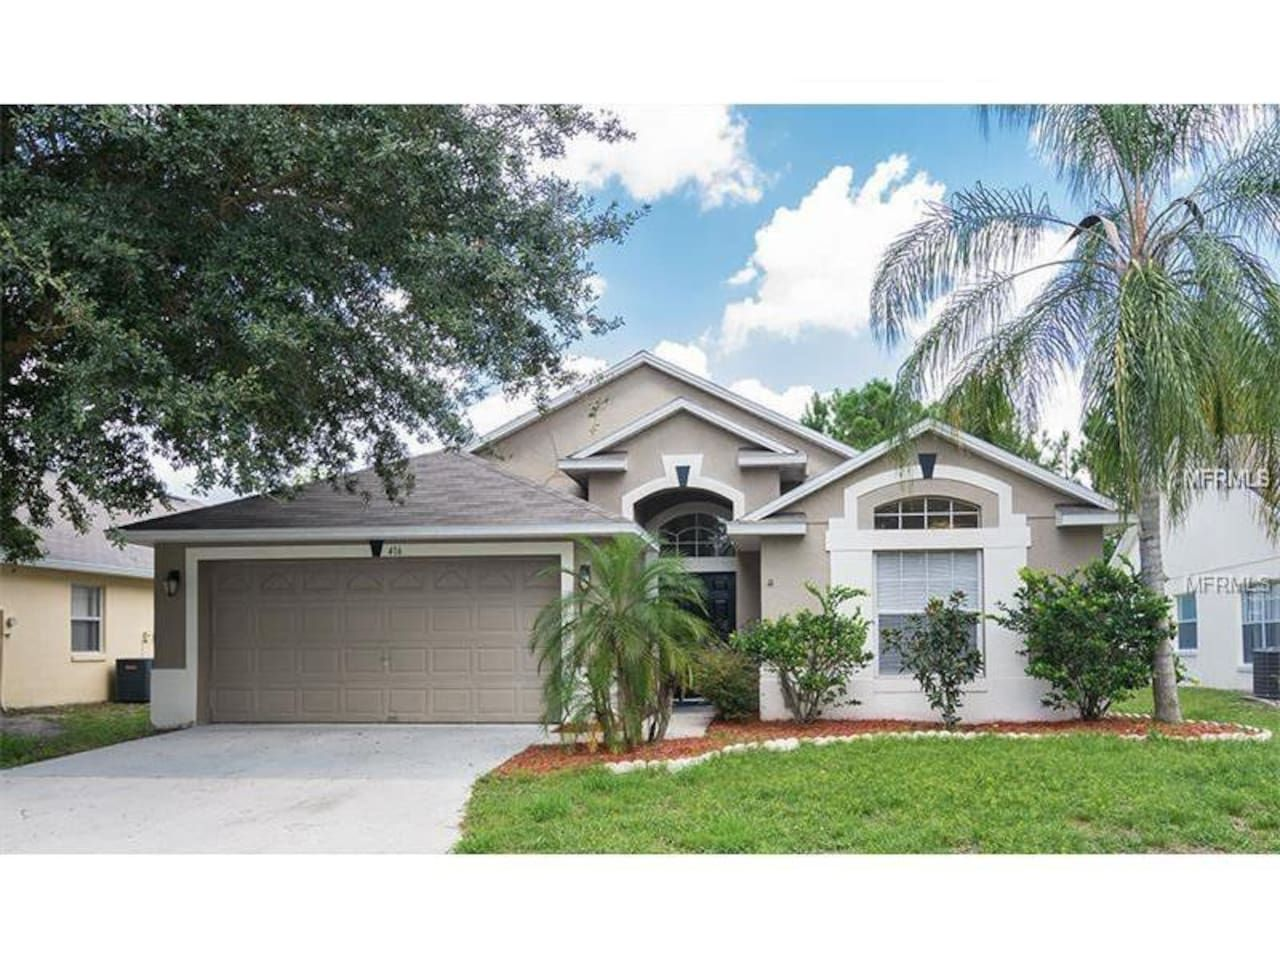 Pool Home 4bed 2 1 2 Bath 5min2disney Houses For Rent In Davenport Renting A House Disney Home Florida Holiday